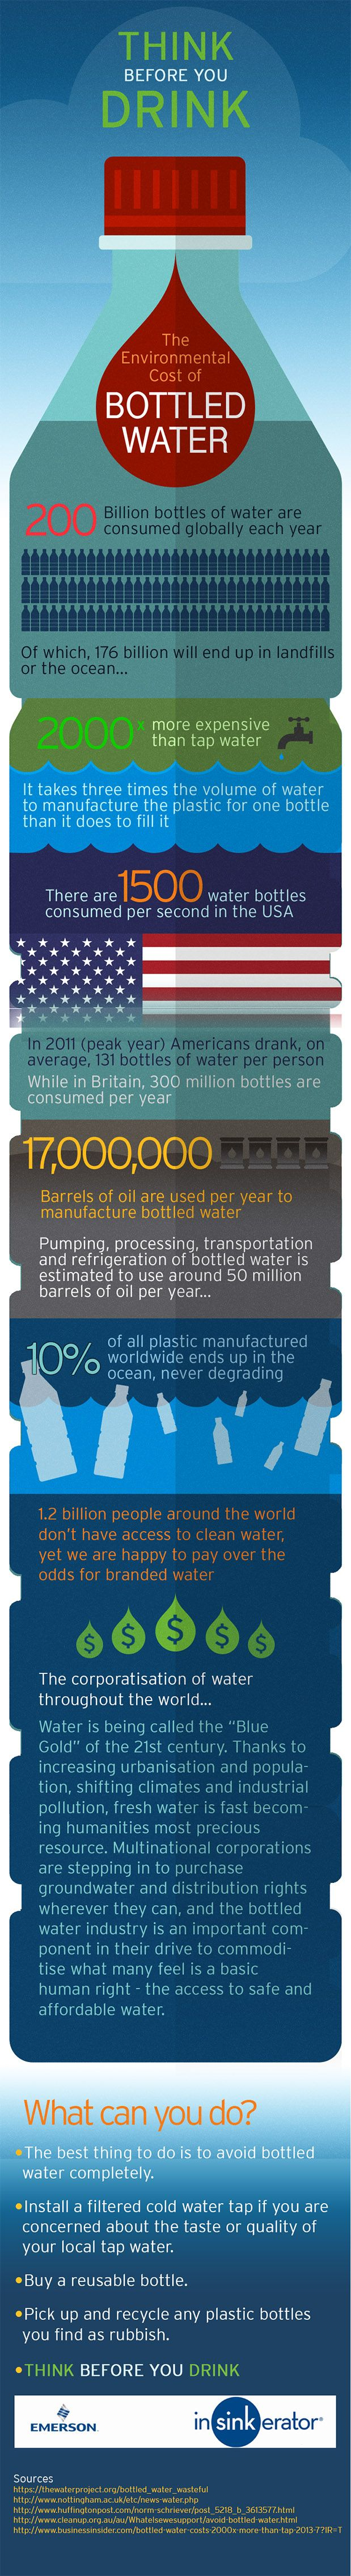 Think Before You Drink! Infographic from Insinkerator – The environmental cost of bottled water. Visit InSinkErator for an array of instant hot and cold water taps that can be used to refill your reusable receptacle.